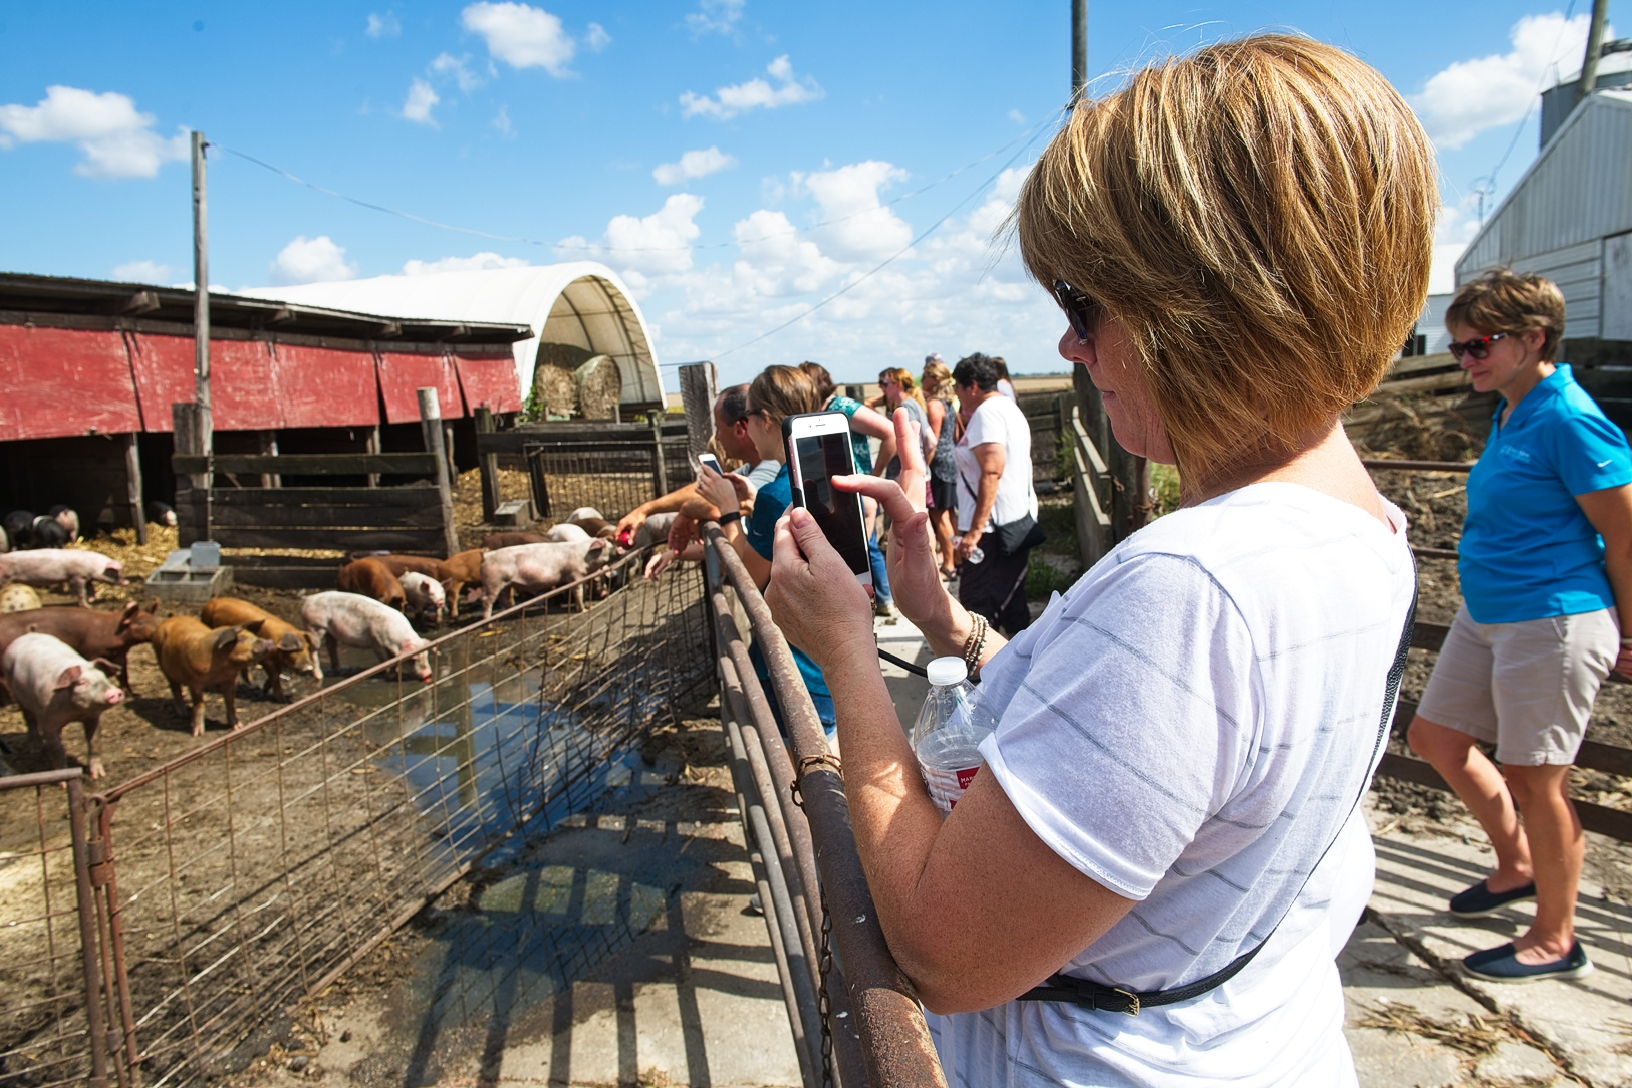 Some of Dave Struthers' pigs are raised outdoors, some are raised in buildings. Photo credit: Joseph L. Murphy/Iowa Soybean Association